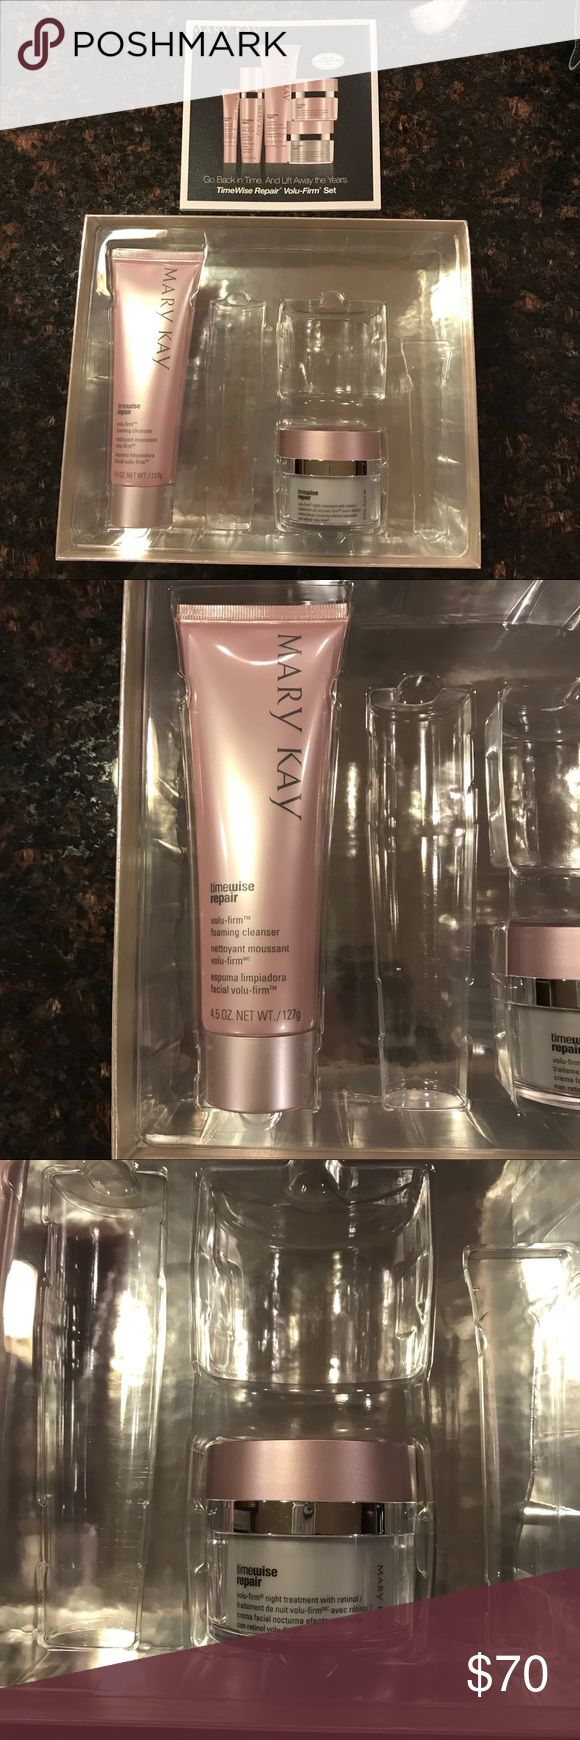 Mary Kay Timewise Repair Cleanser & Night Cream Brand new, still in box. Never been used! Open to selling together or separately.  Volu-Firm Foaming Cleanser - $28 Selling separately at $23 Volu-Firm Night Treatment with Retinol - $52 Selling separately at $47 Listing price reflects the purchasing together price Mary Kay Other